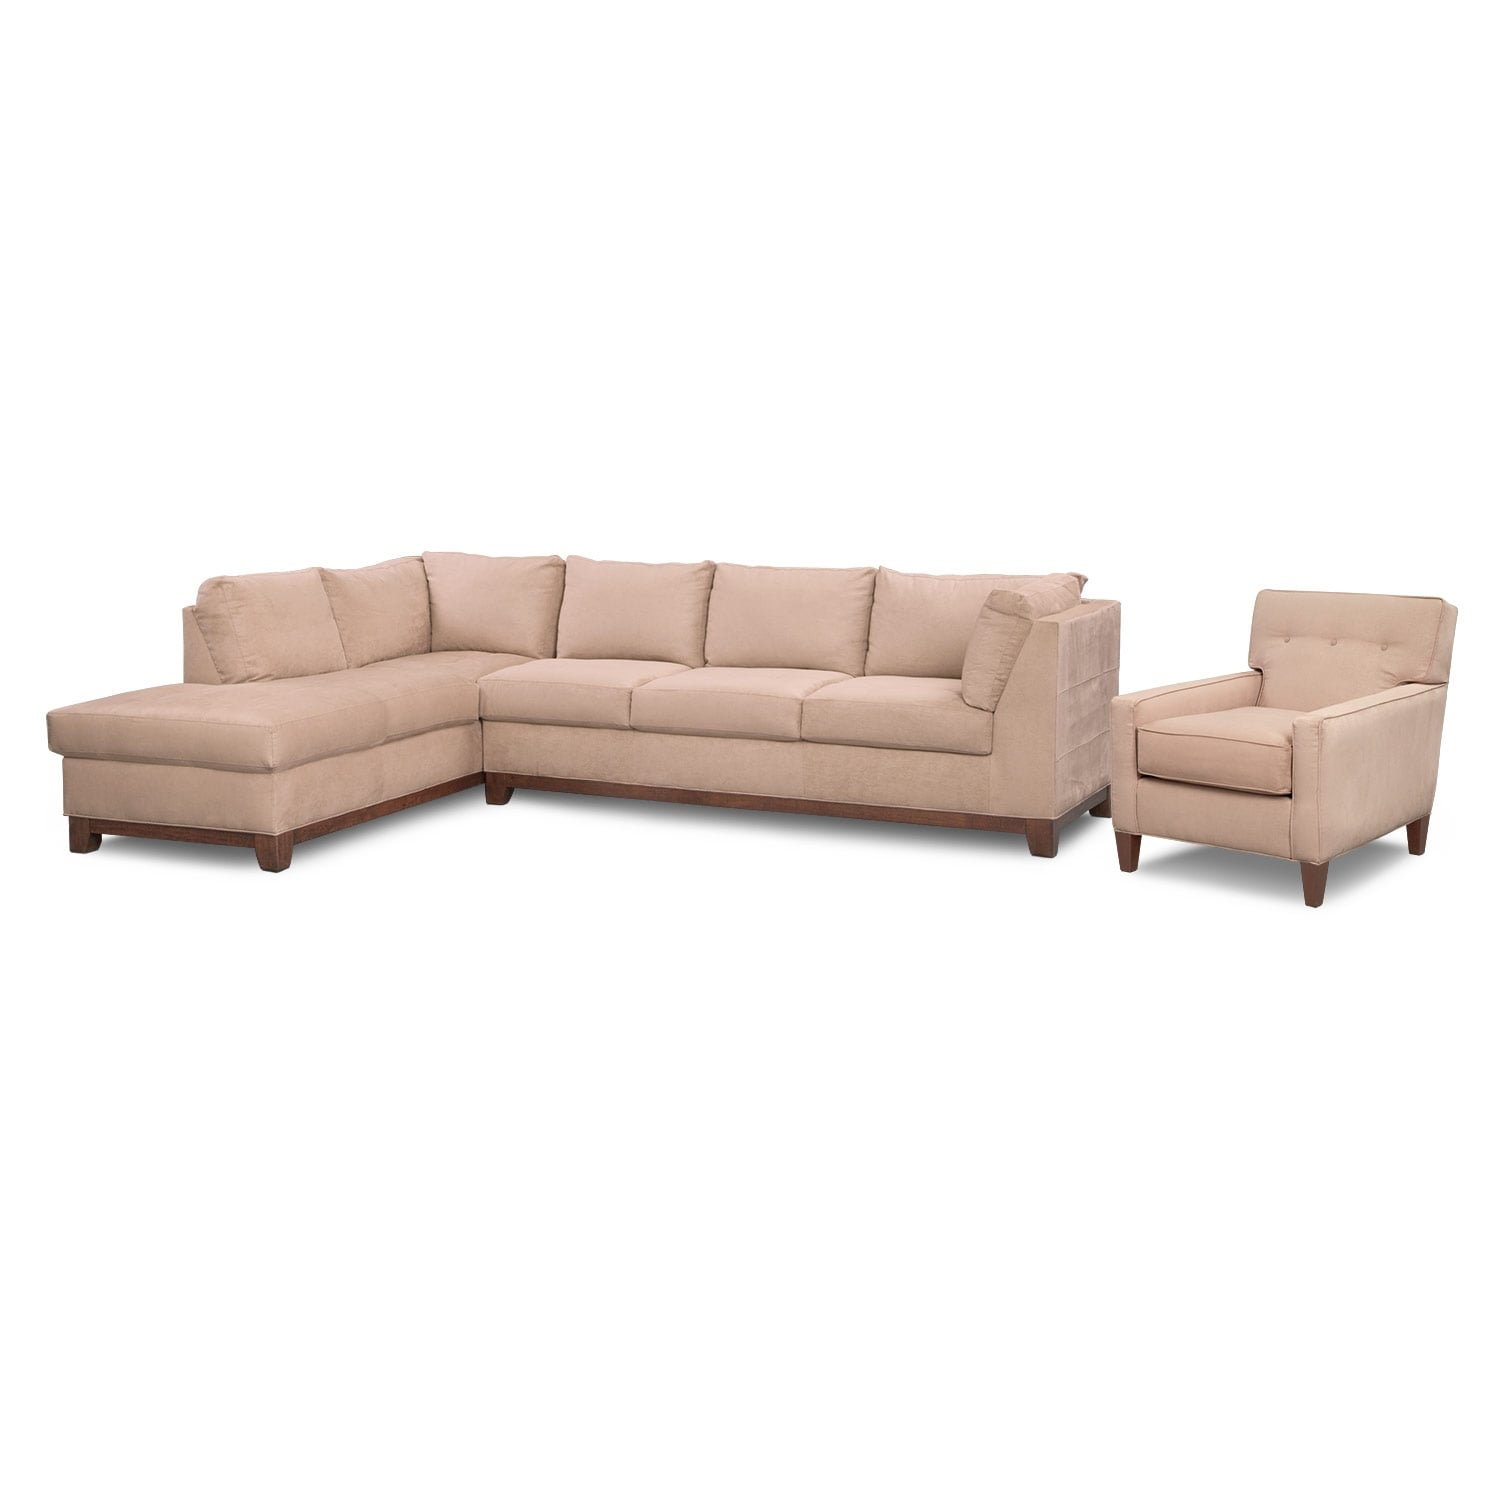 Soho 2-Piece Sectional with Left-Facing Chaise and Chair - Cobblestone